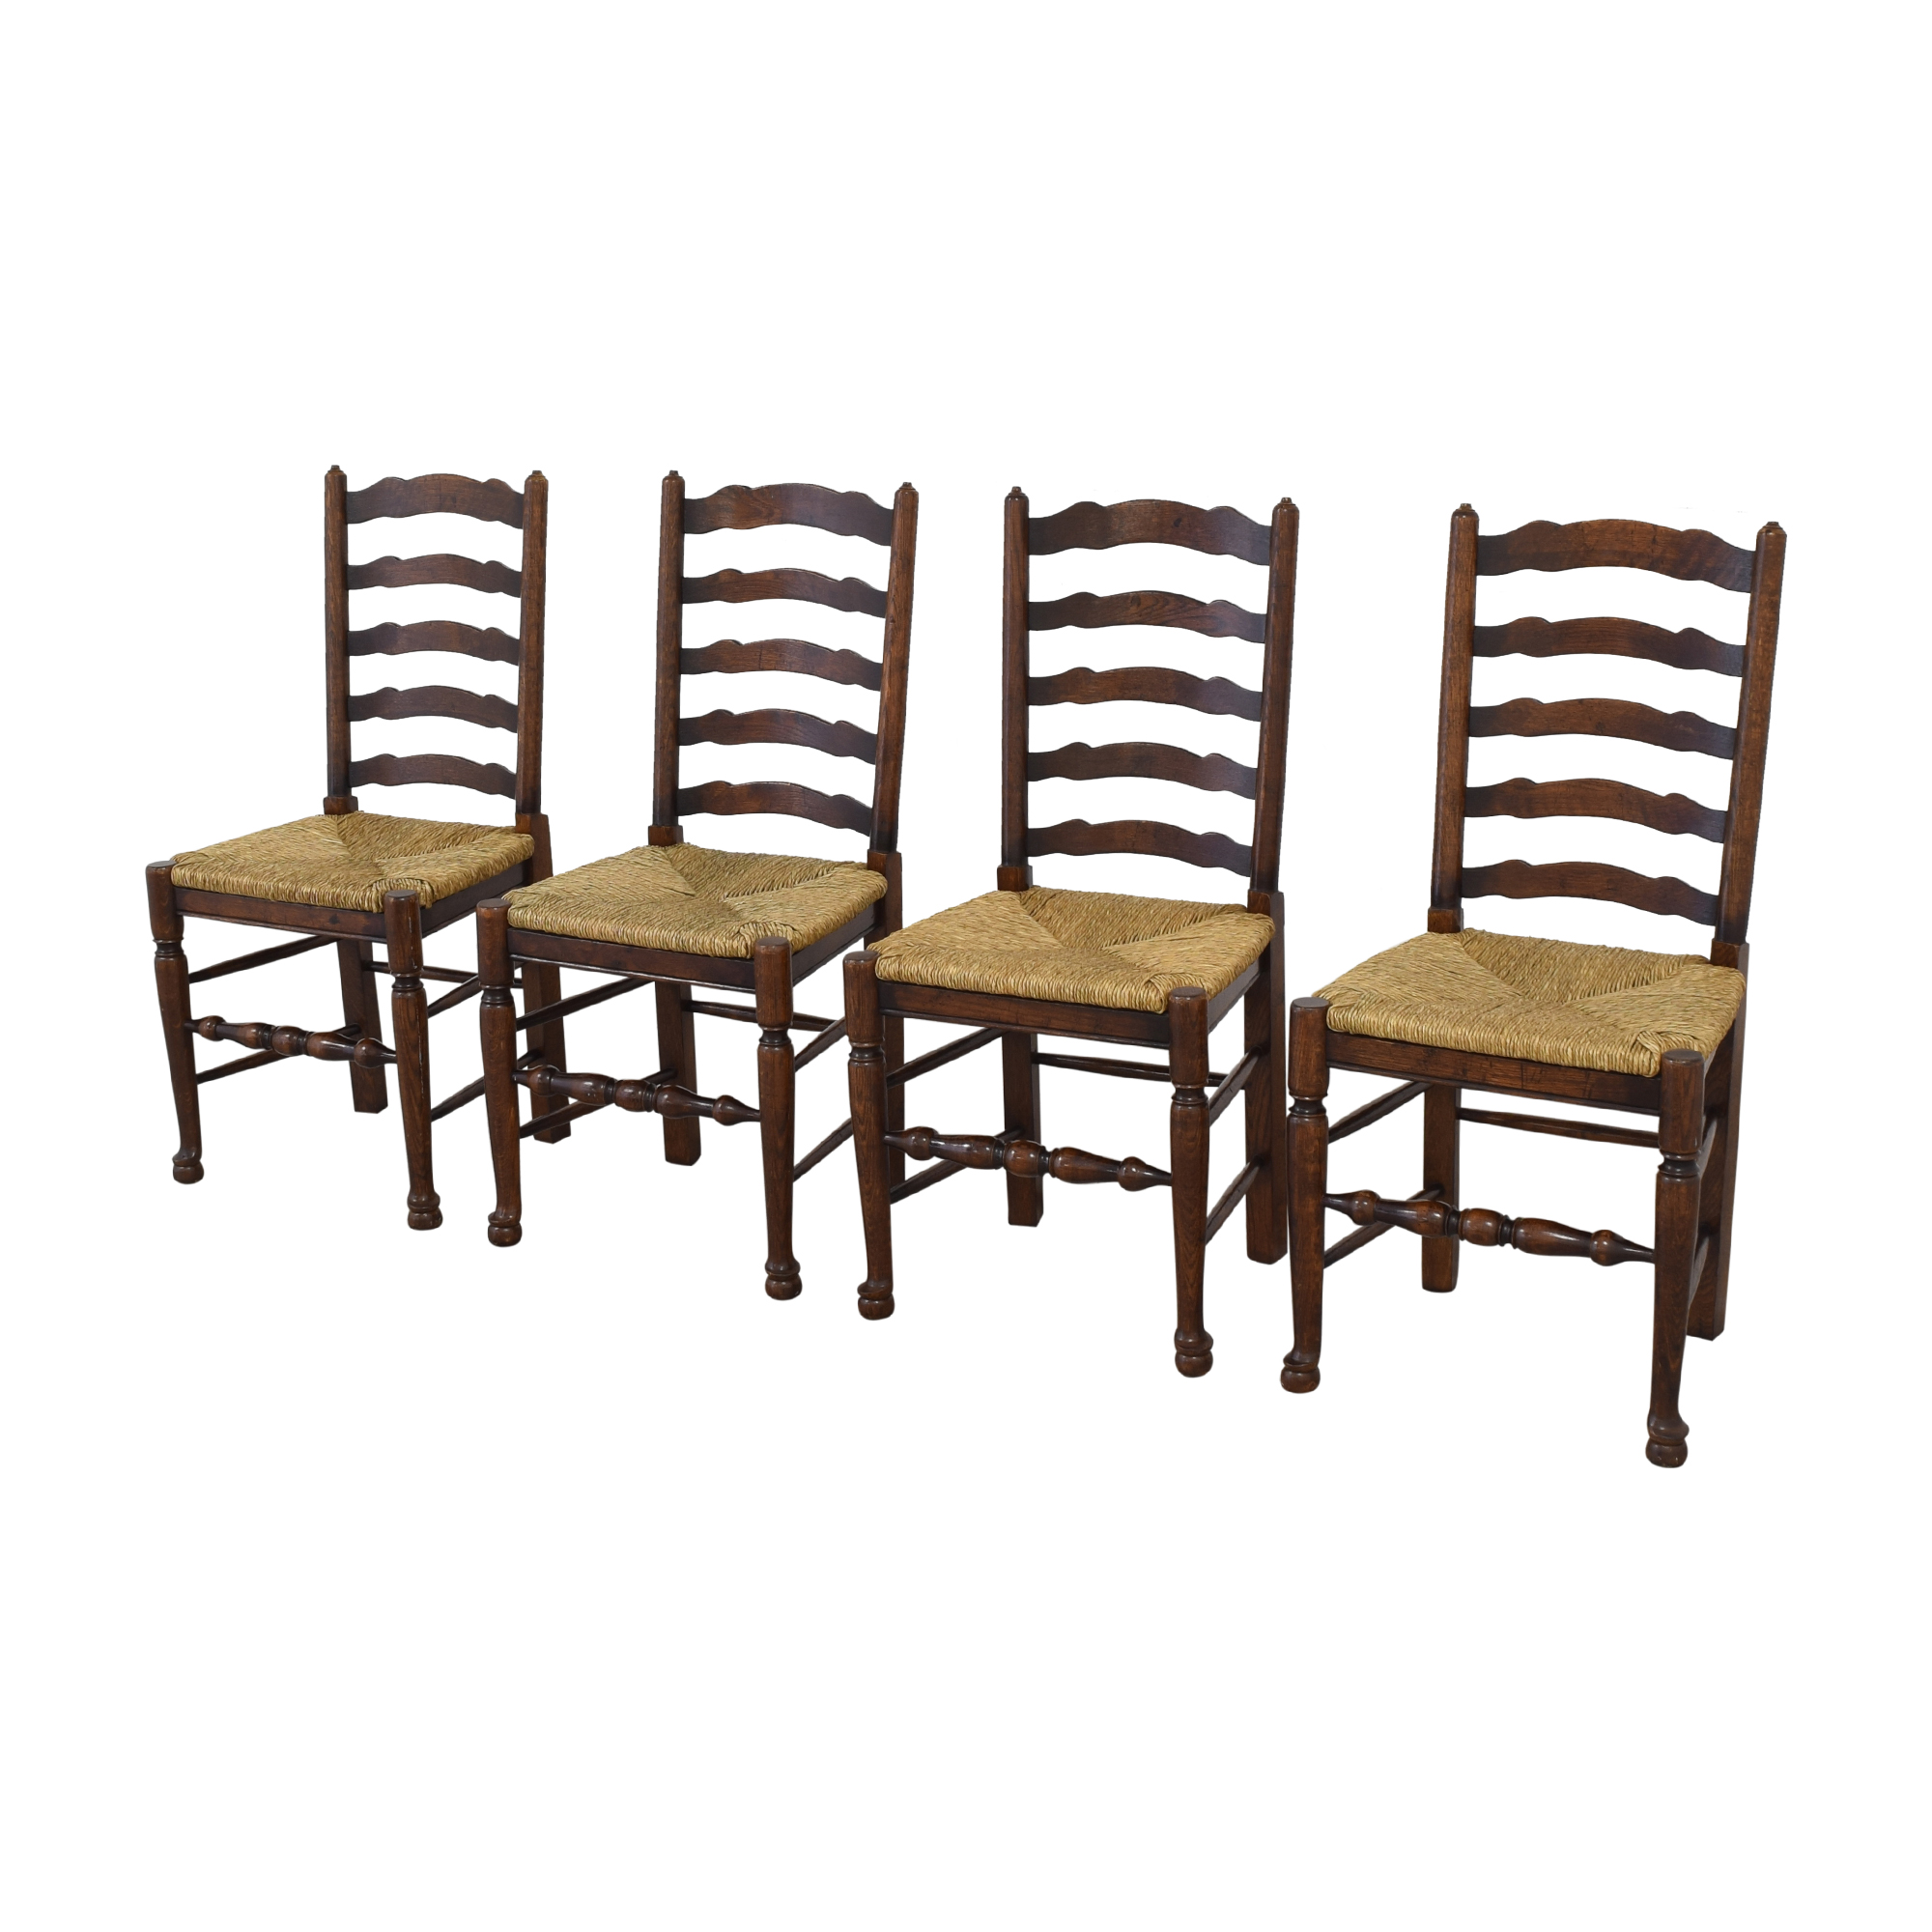 Pottery Barn Pottery Barn Ladder Back Dining Chairs